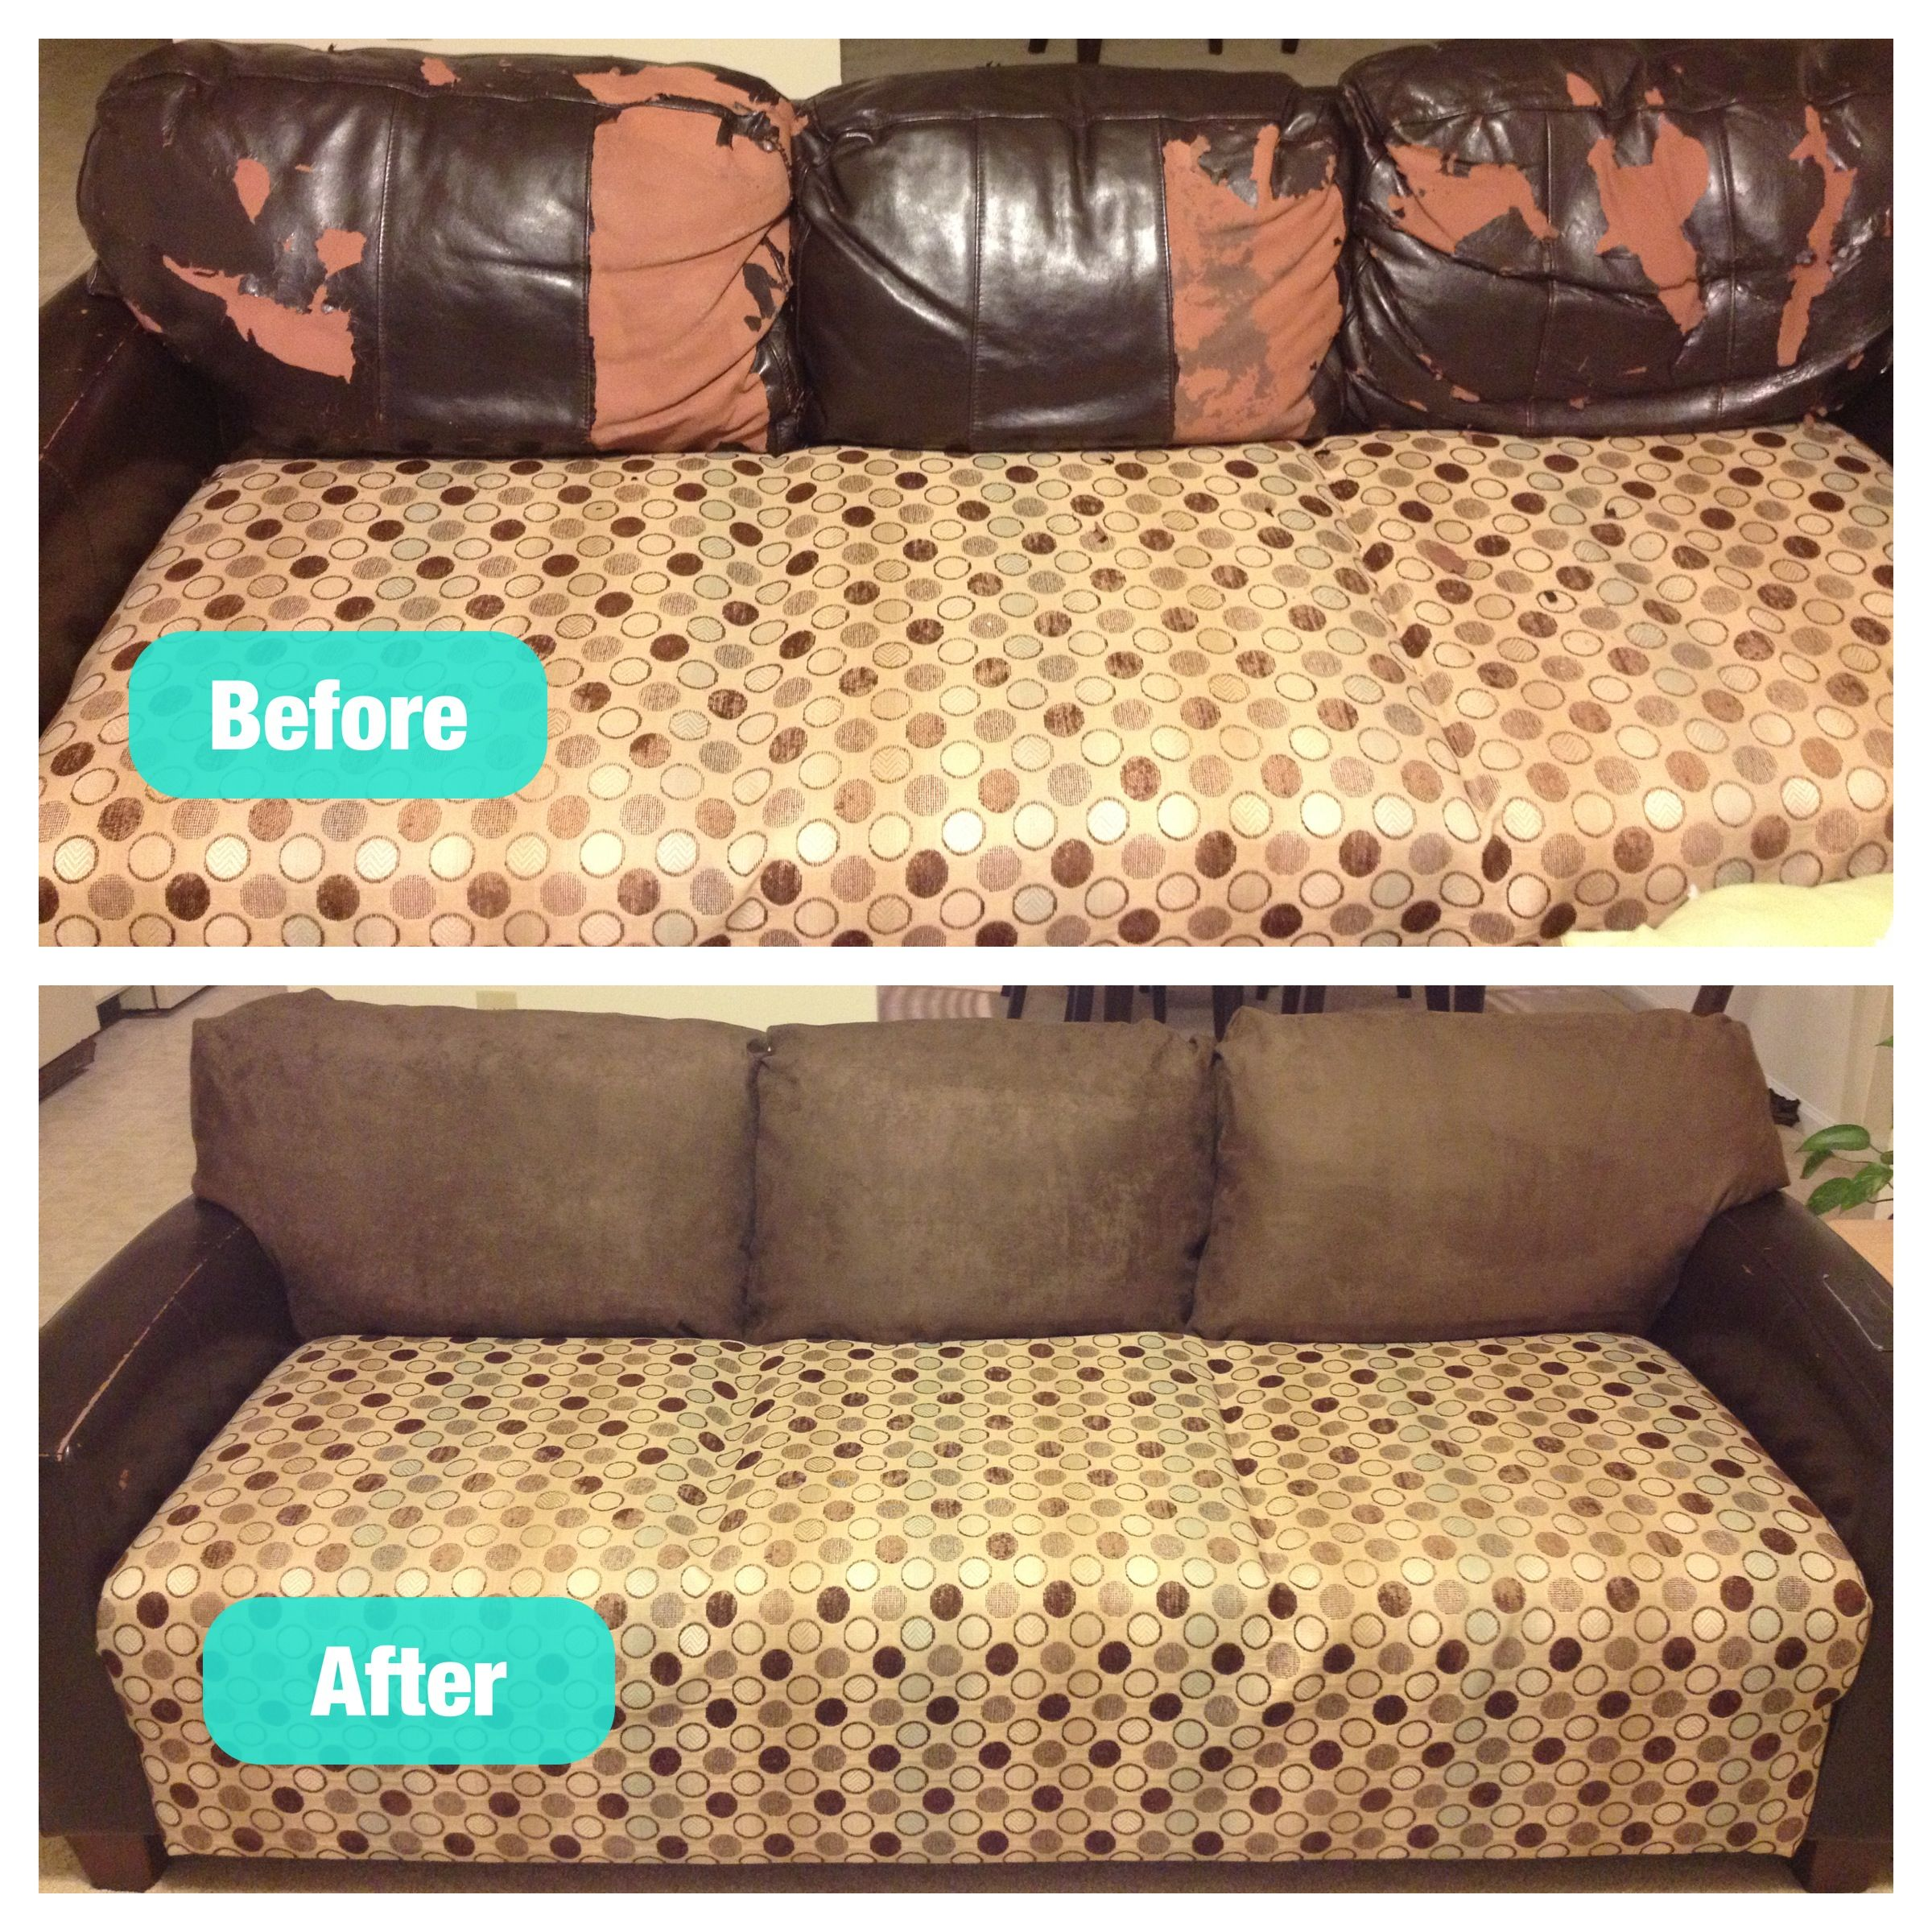 Leather Sofa Repair Near Me Fixed My Peeling Leather Couch Cushions For Under 60 Not Bad For